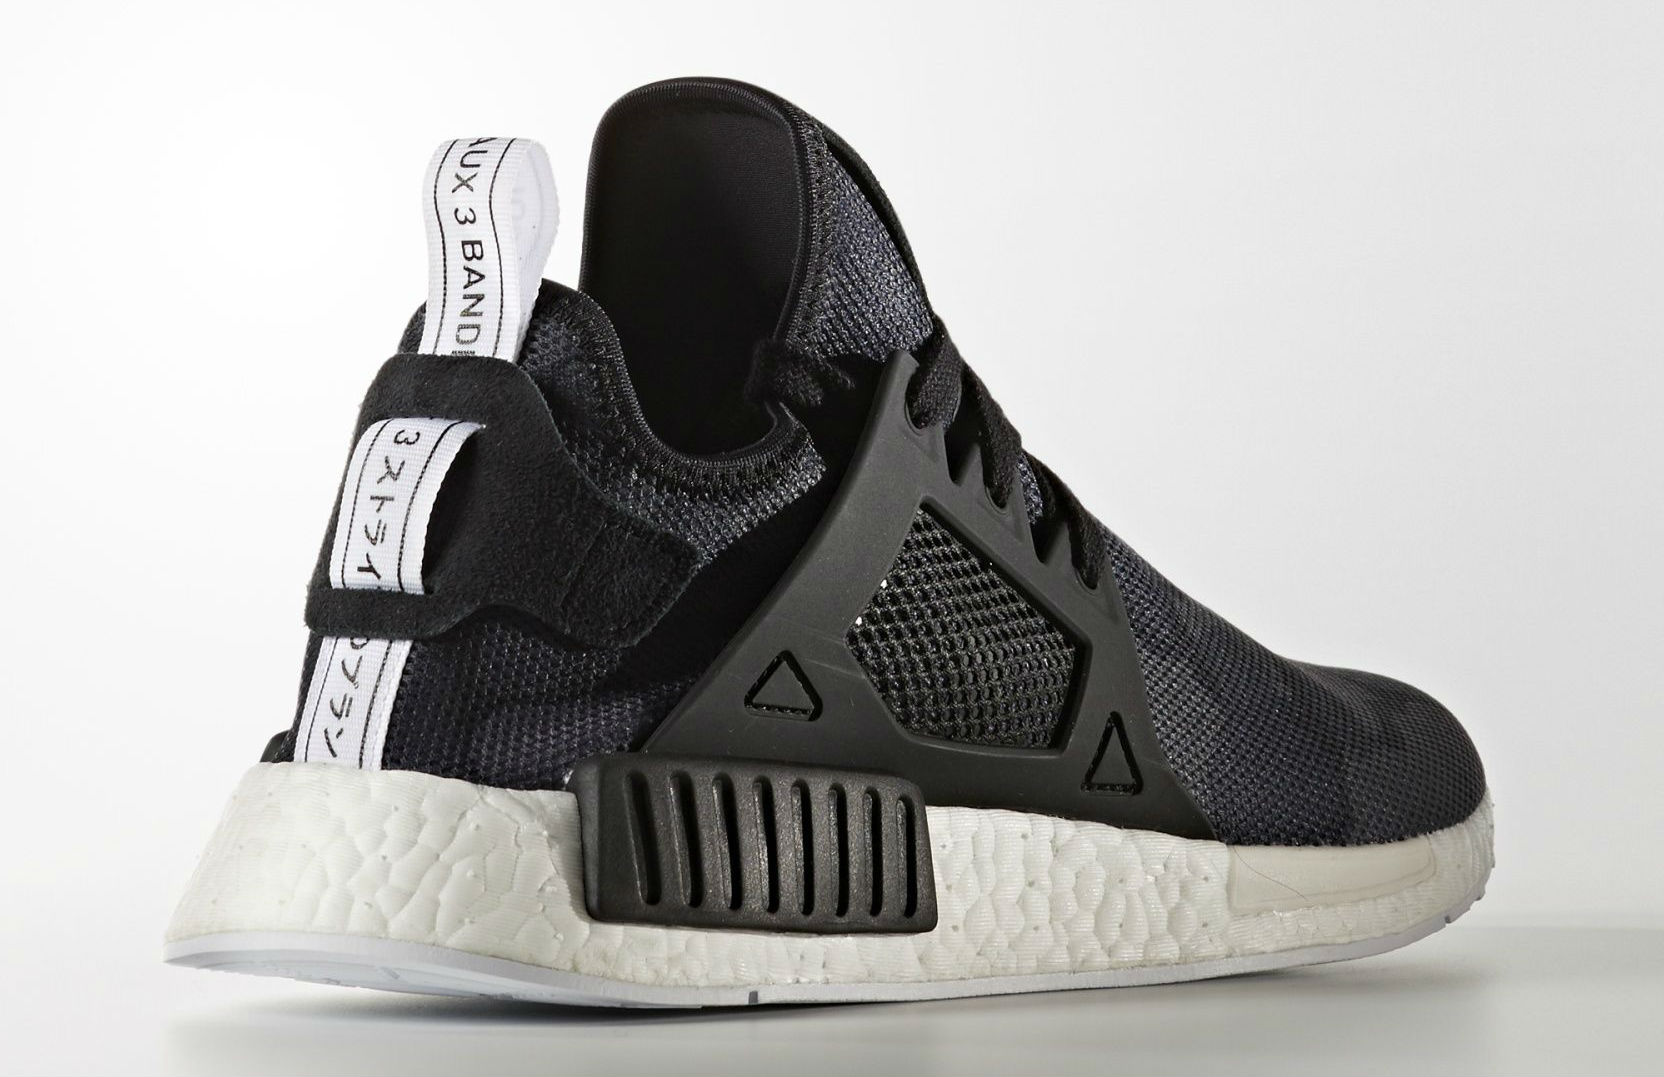 d50ca5082 NMD XR1 PK S32216 S32215 review from jordanswholesale co